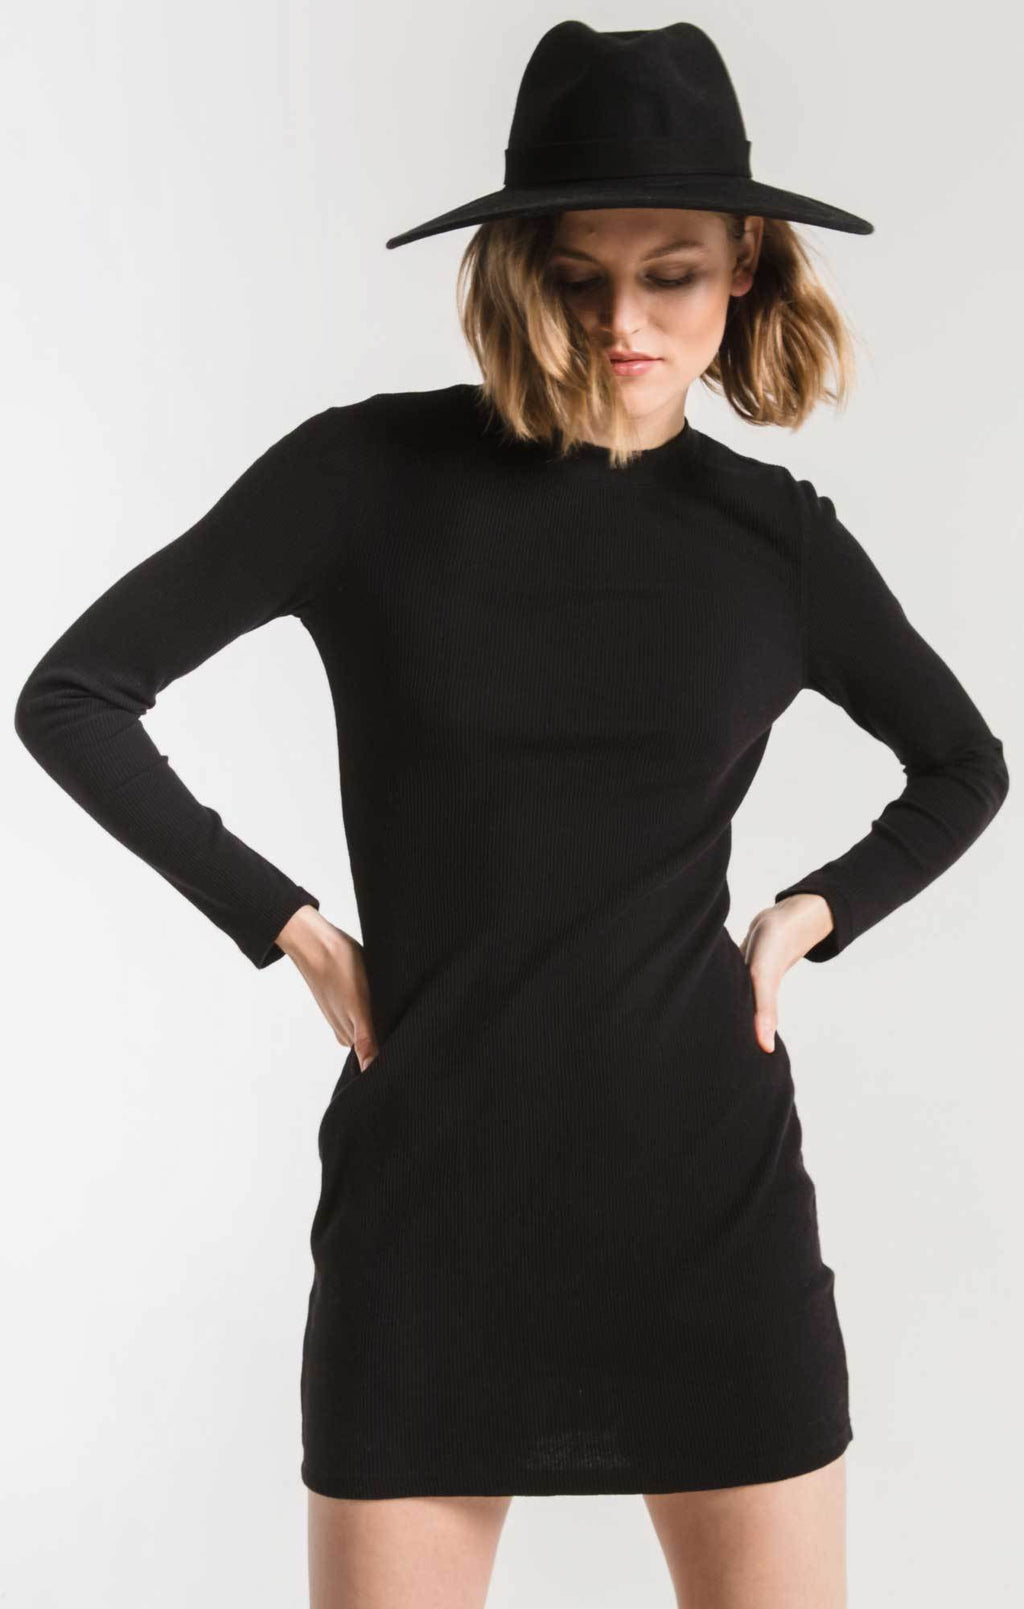 THE THERMAL LONG SLEEVE DRESS